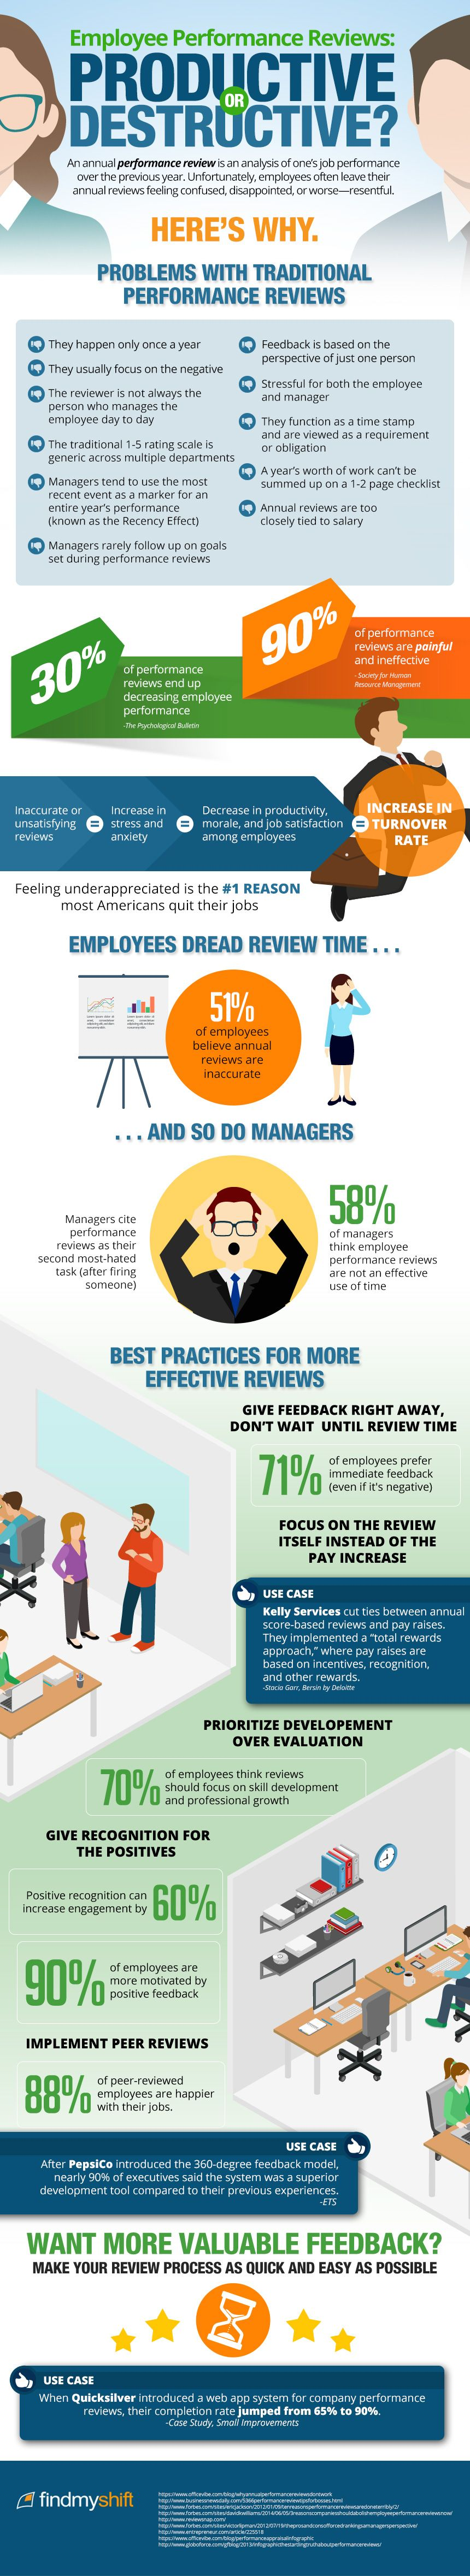 Employee Performance Reviews Productive Or Destructive